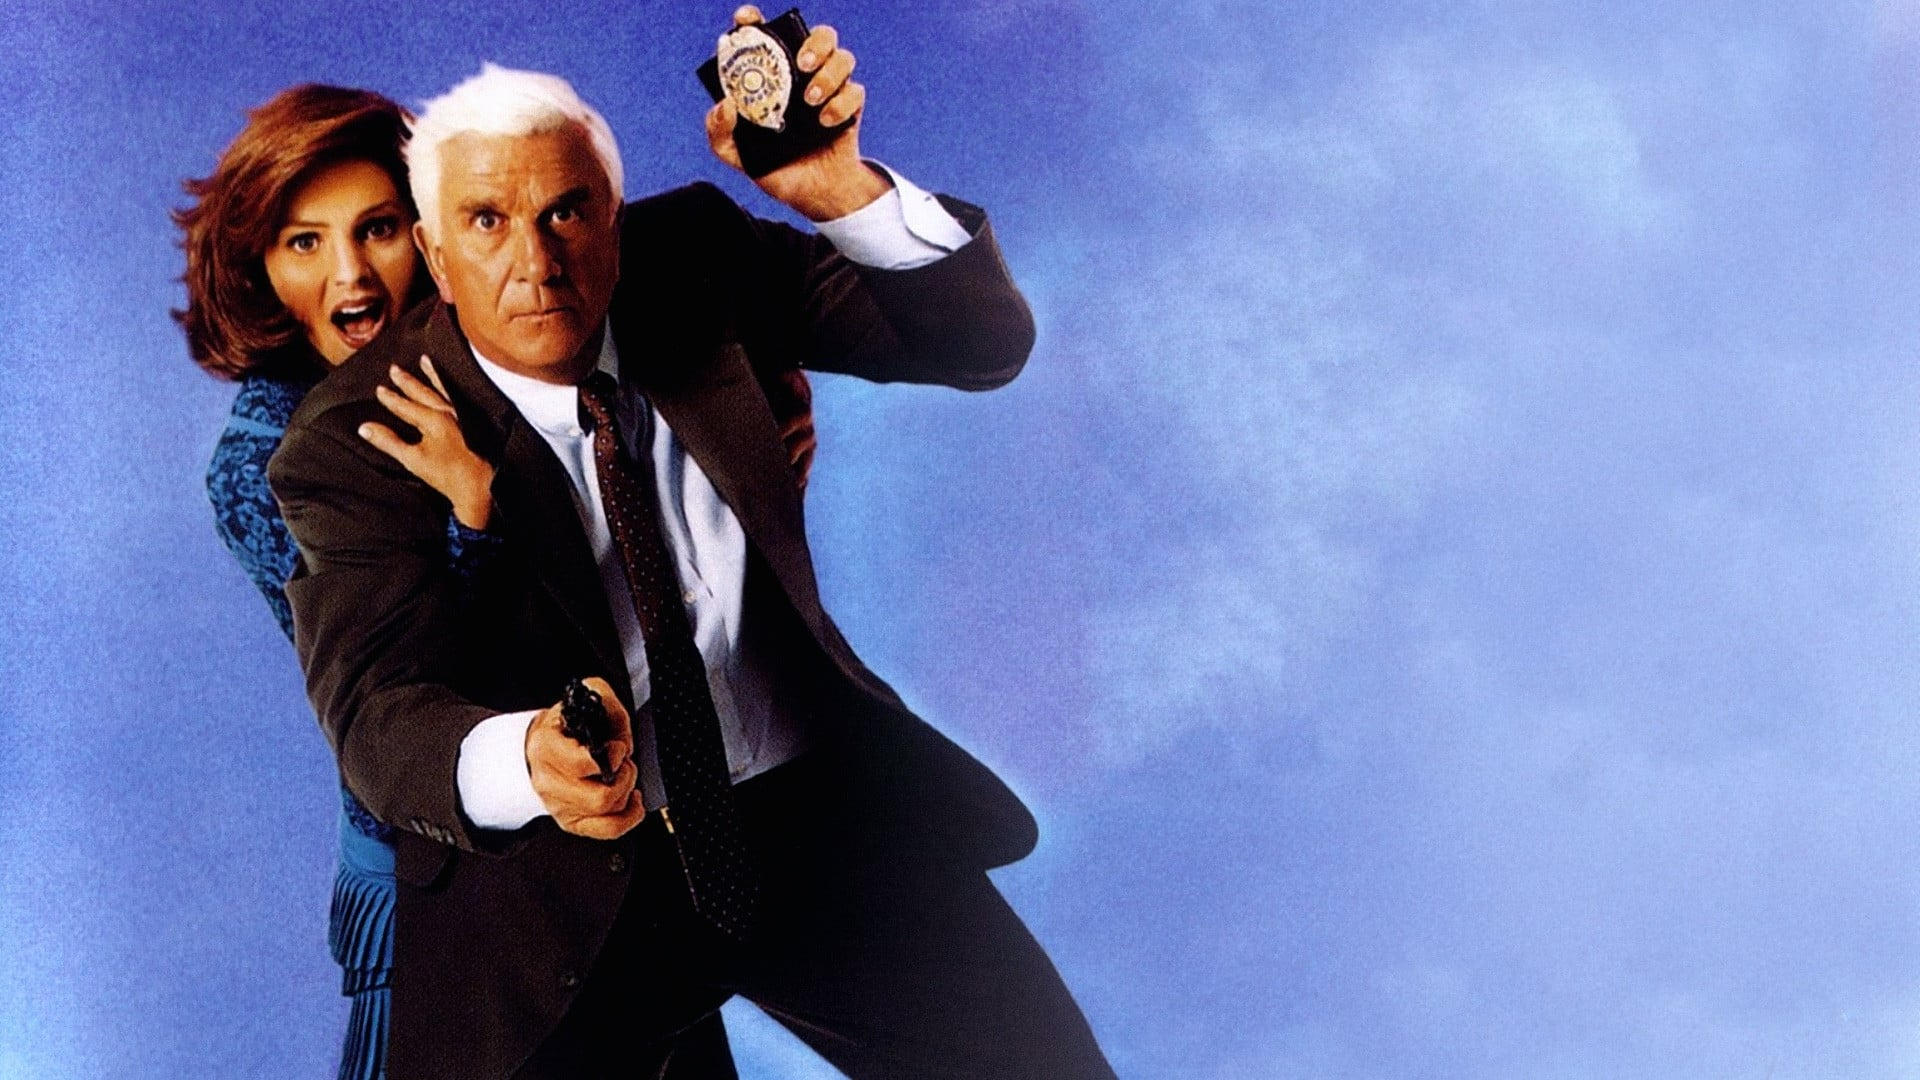 The Naked Gun: From the Files of Police Squad! watch movie